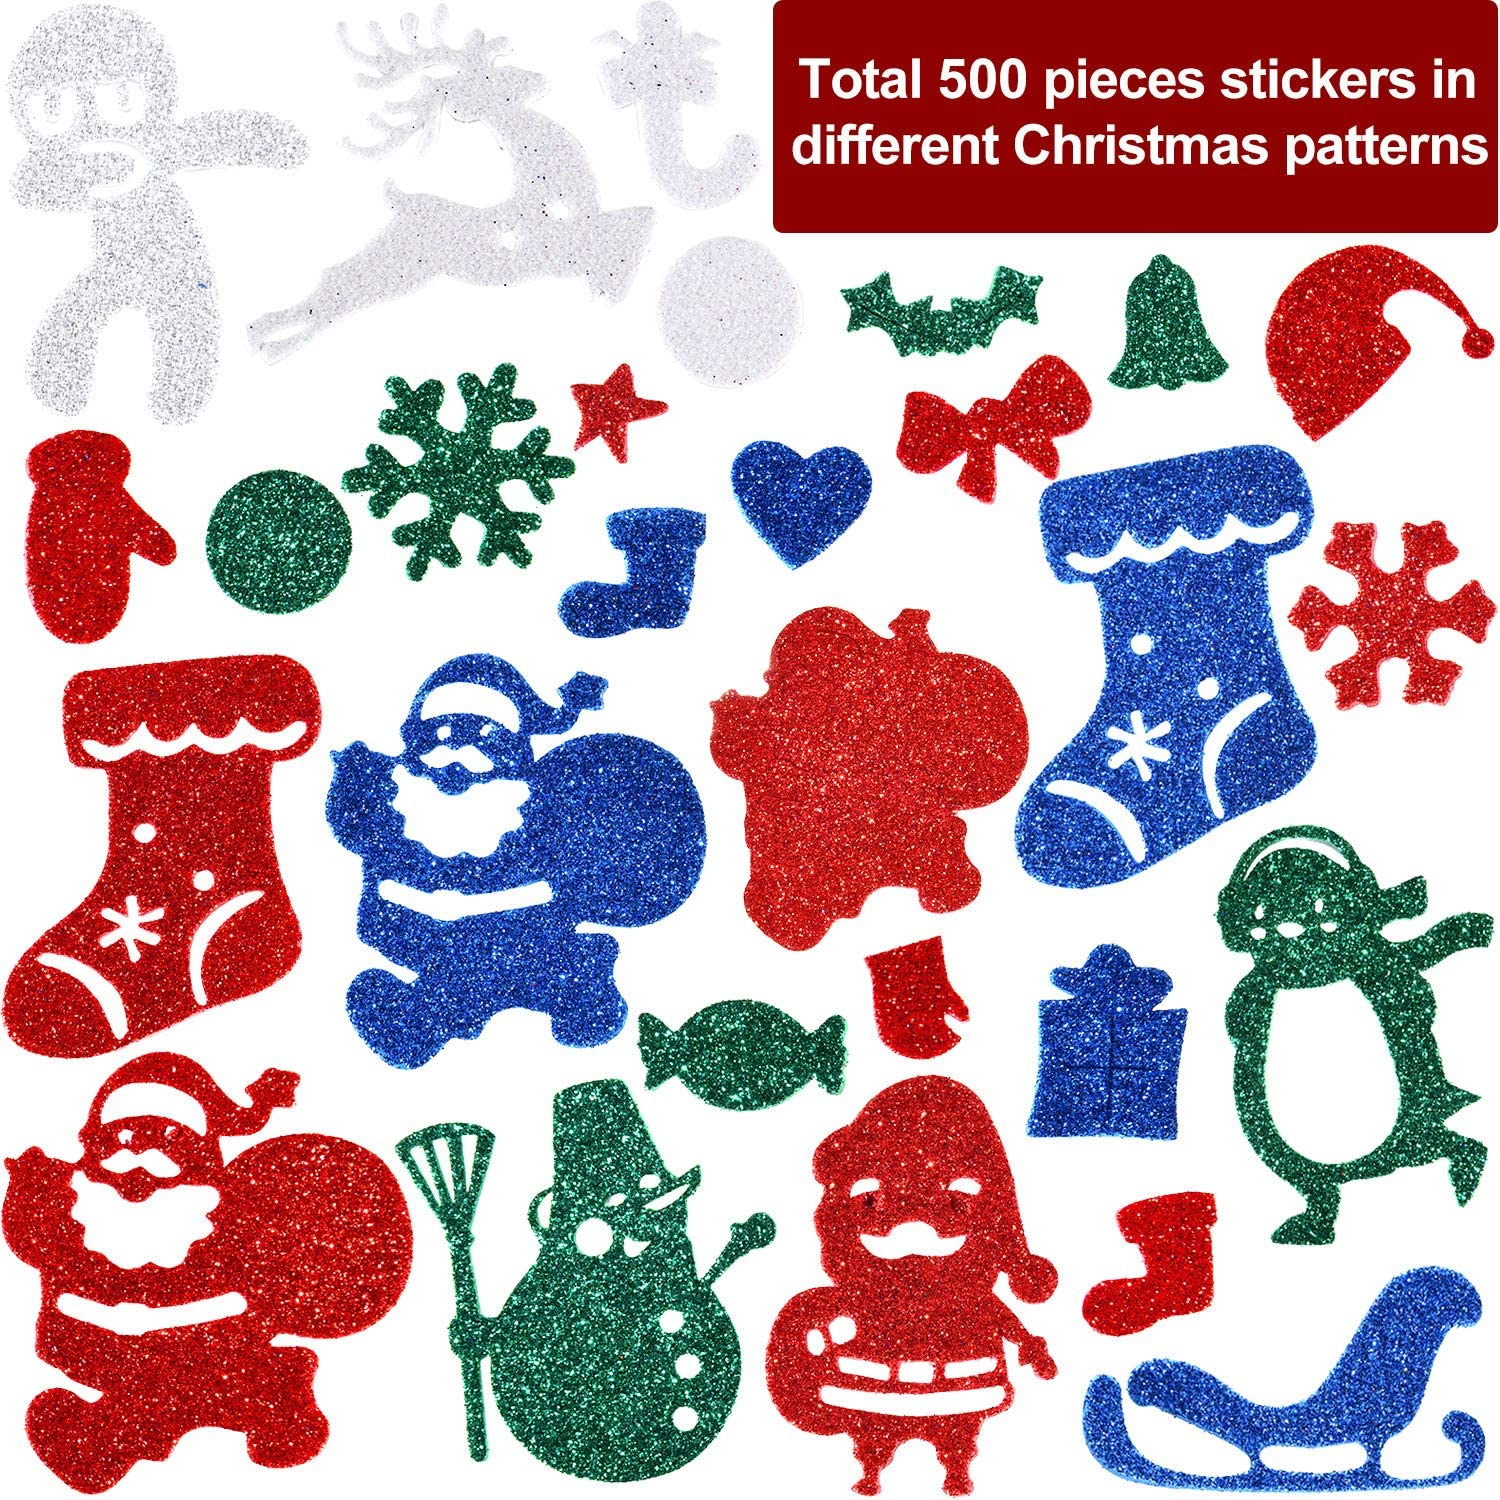 500Pcs Glitter Foam Stickers Self Adhesive Xmas Theme Shapes Stickers Christmas DIY Crafts Stickers for Christmas Party Decoration Classroom DIY Crafts Supplies KATUMO Christmas Foam Stickers